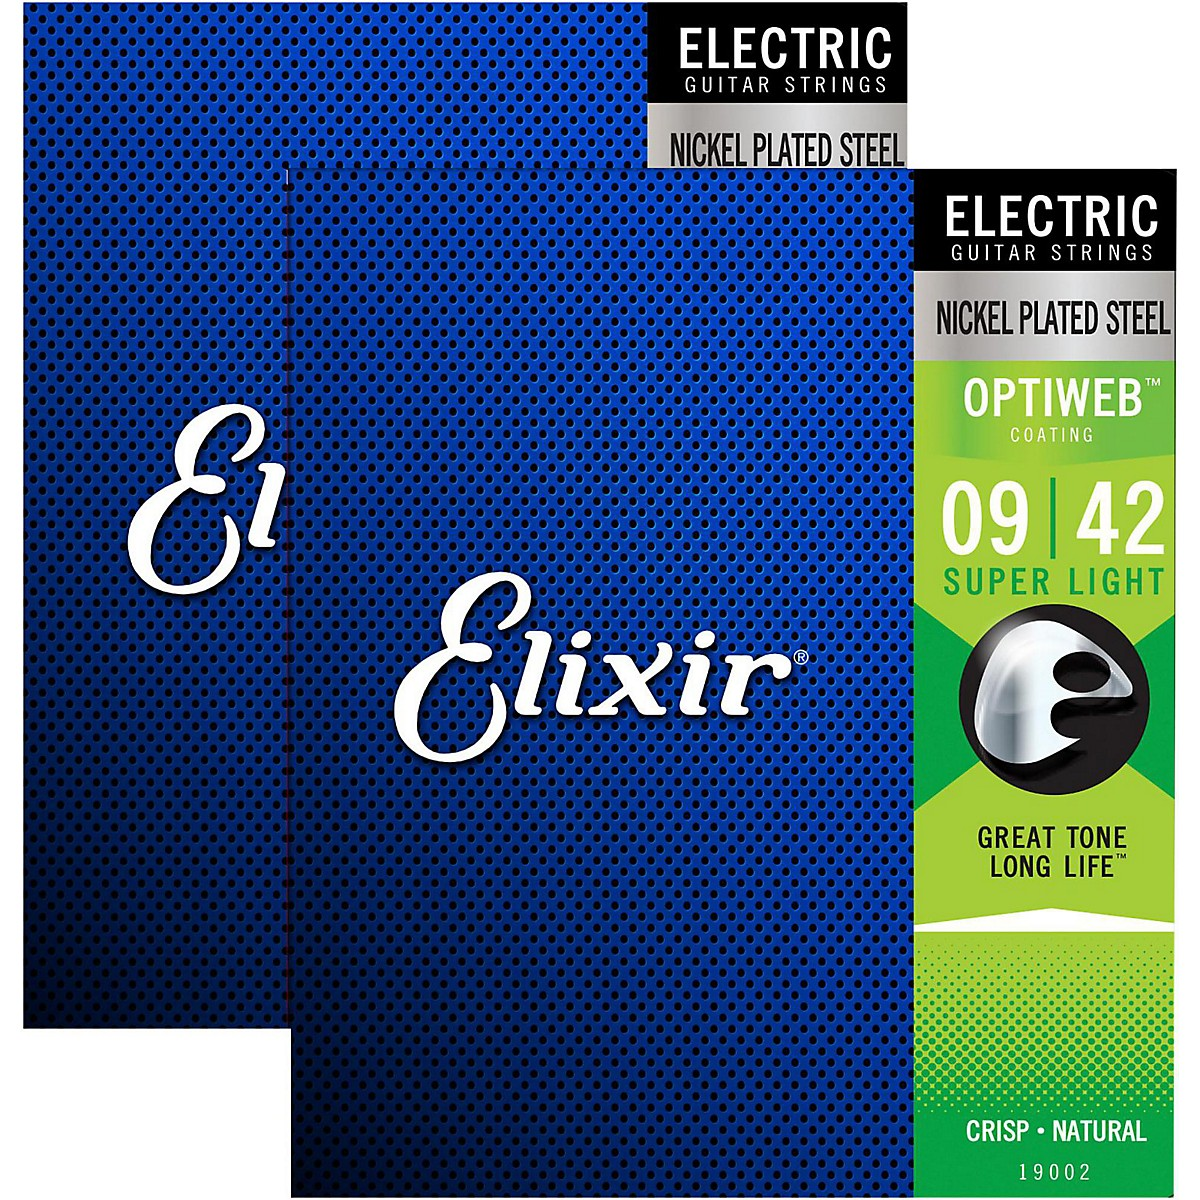 Elixir Electric Guitar Strings with OPTIWEB Coating, Super Light (.009-.042) - 2 Pack